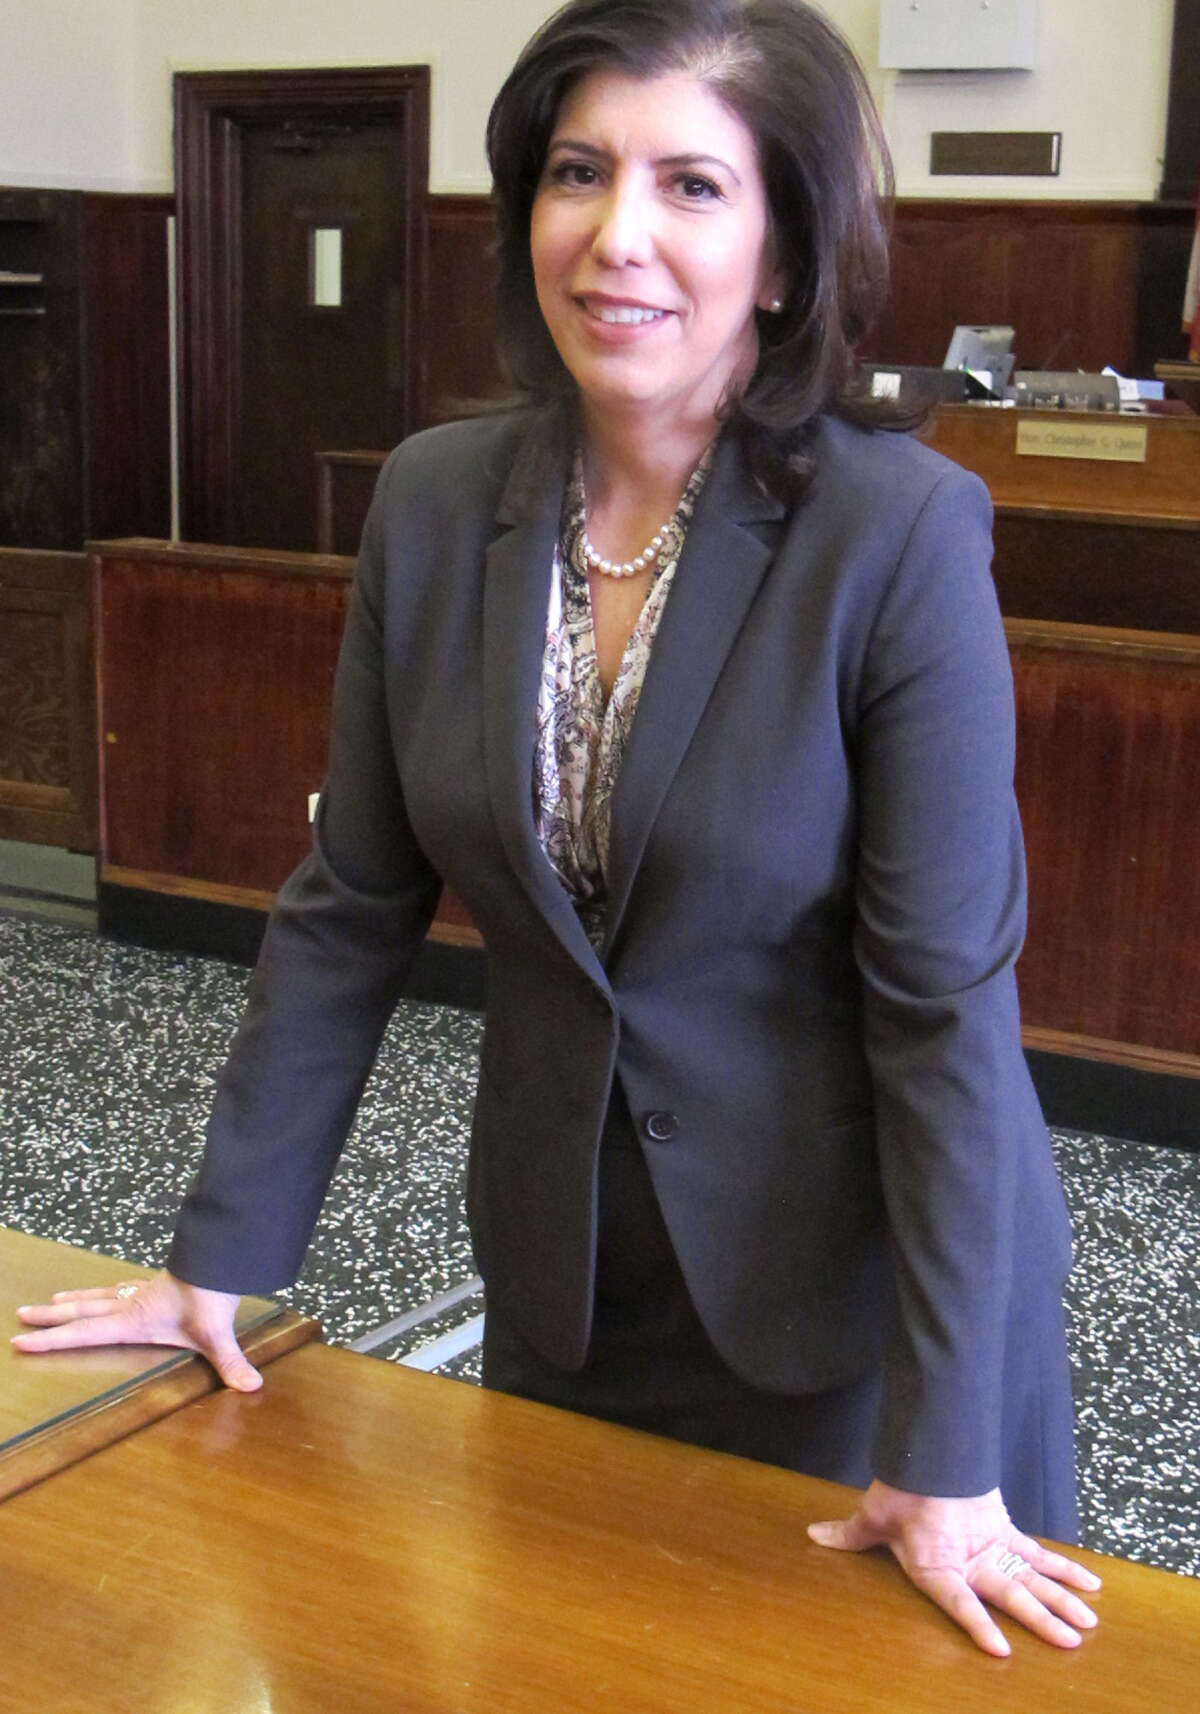 """FILE- In this June 6, 2015 file photo, Madeline Singas poses in a Mineola, N.Y., courtroom moments after being sworn in as the acting district attorney for Nassau County. Singas said compliance with a state law requiring schools to report incidents of bullying, harassment or intimidation is a """"disaster,"""" after finding that 58 percent of all schools statewide failed to report even one incident, and 82 percent found no incidents of cyberbullying. (AP Photo/Frank Eltman, File) ORG XMIT: NYR101"""